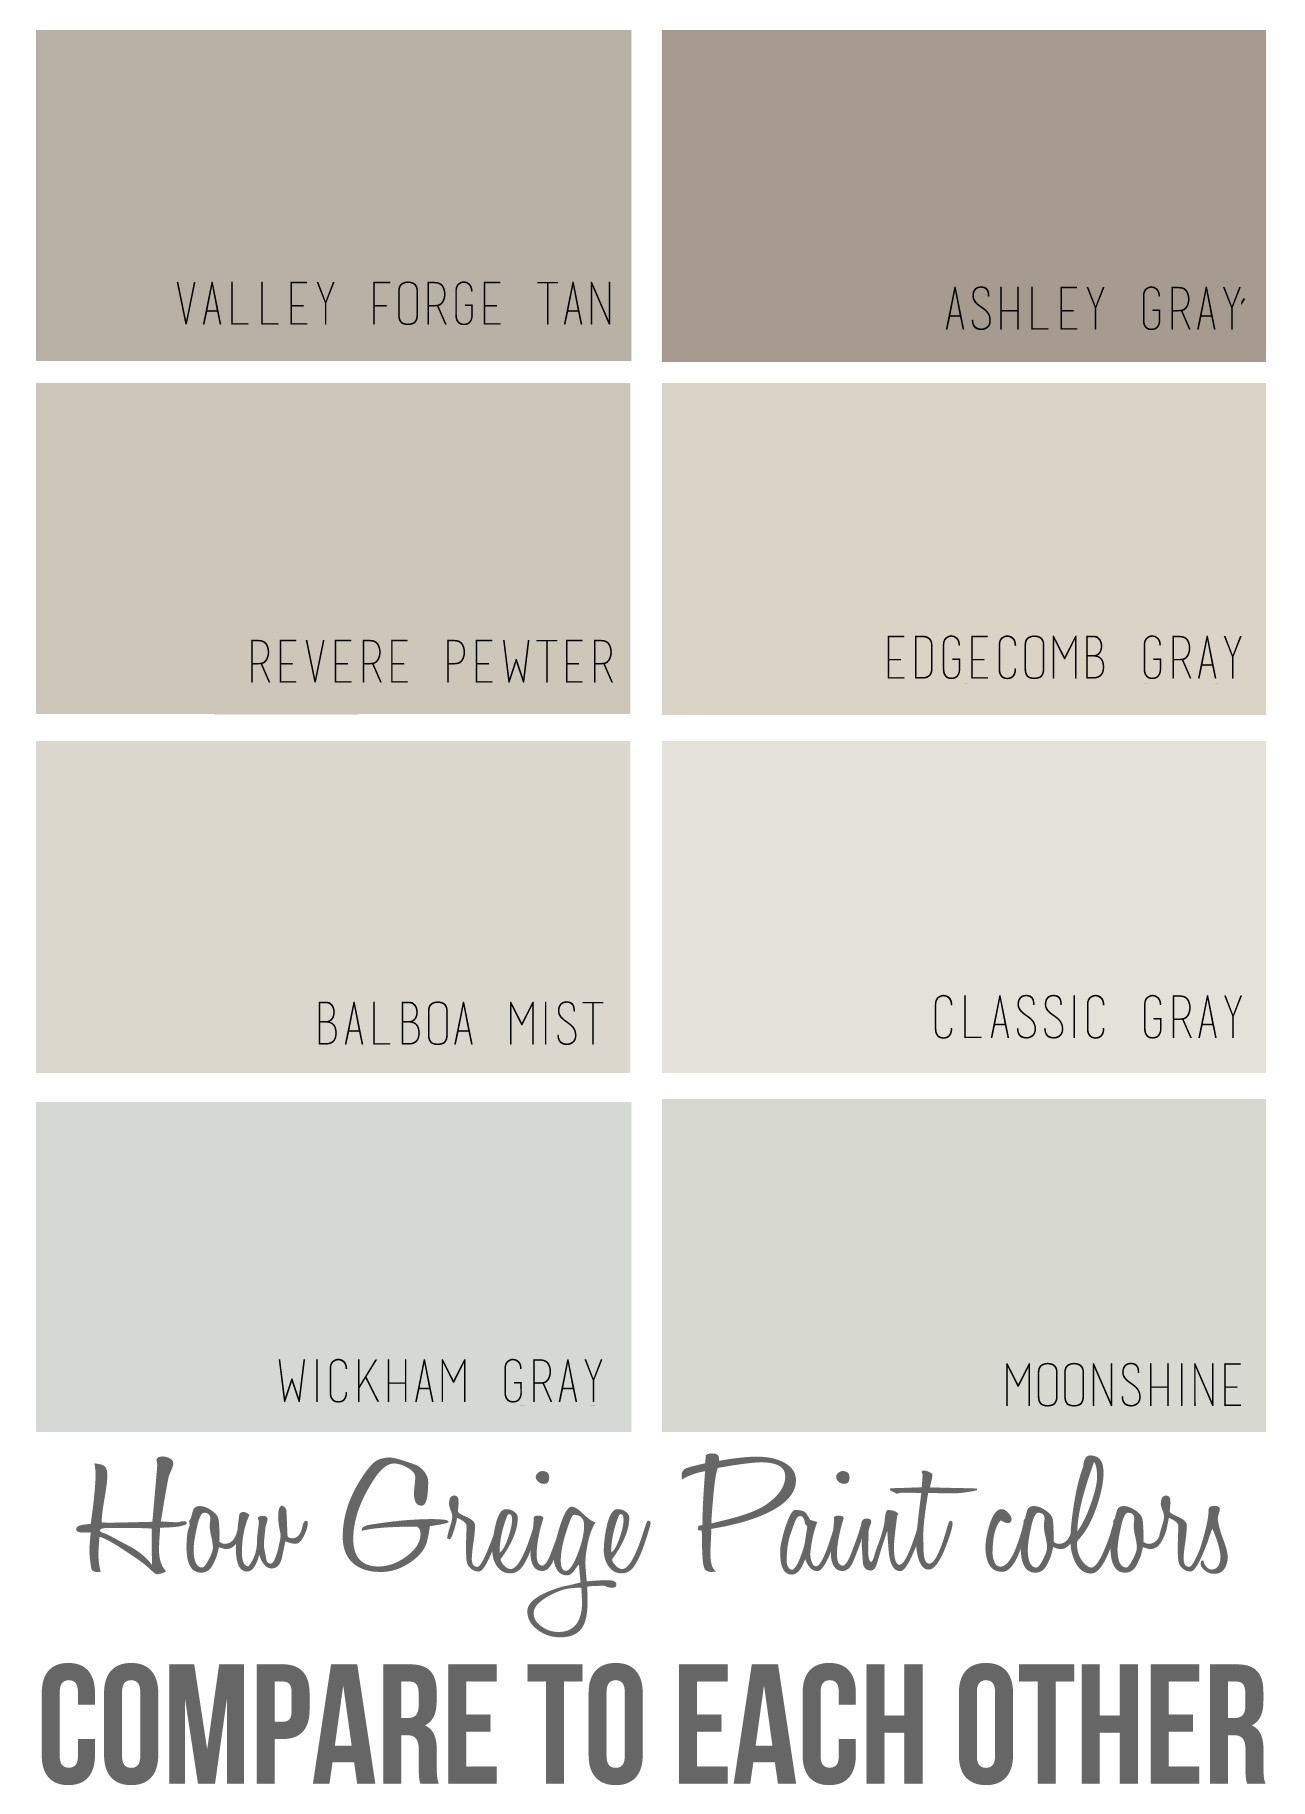 Best ideas about Greige Paint Colors . Save or Pin How Greige Colors pare to Each Other Now.